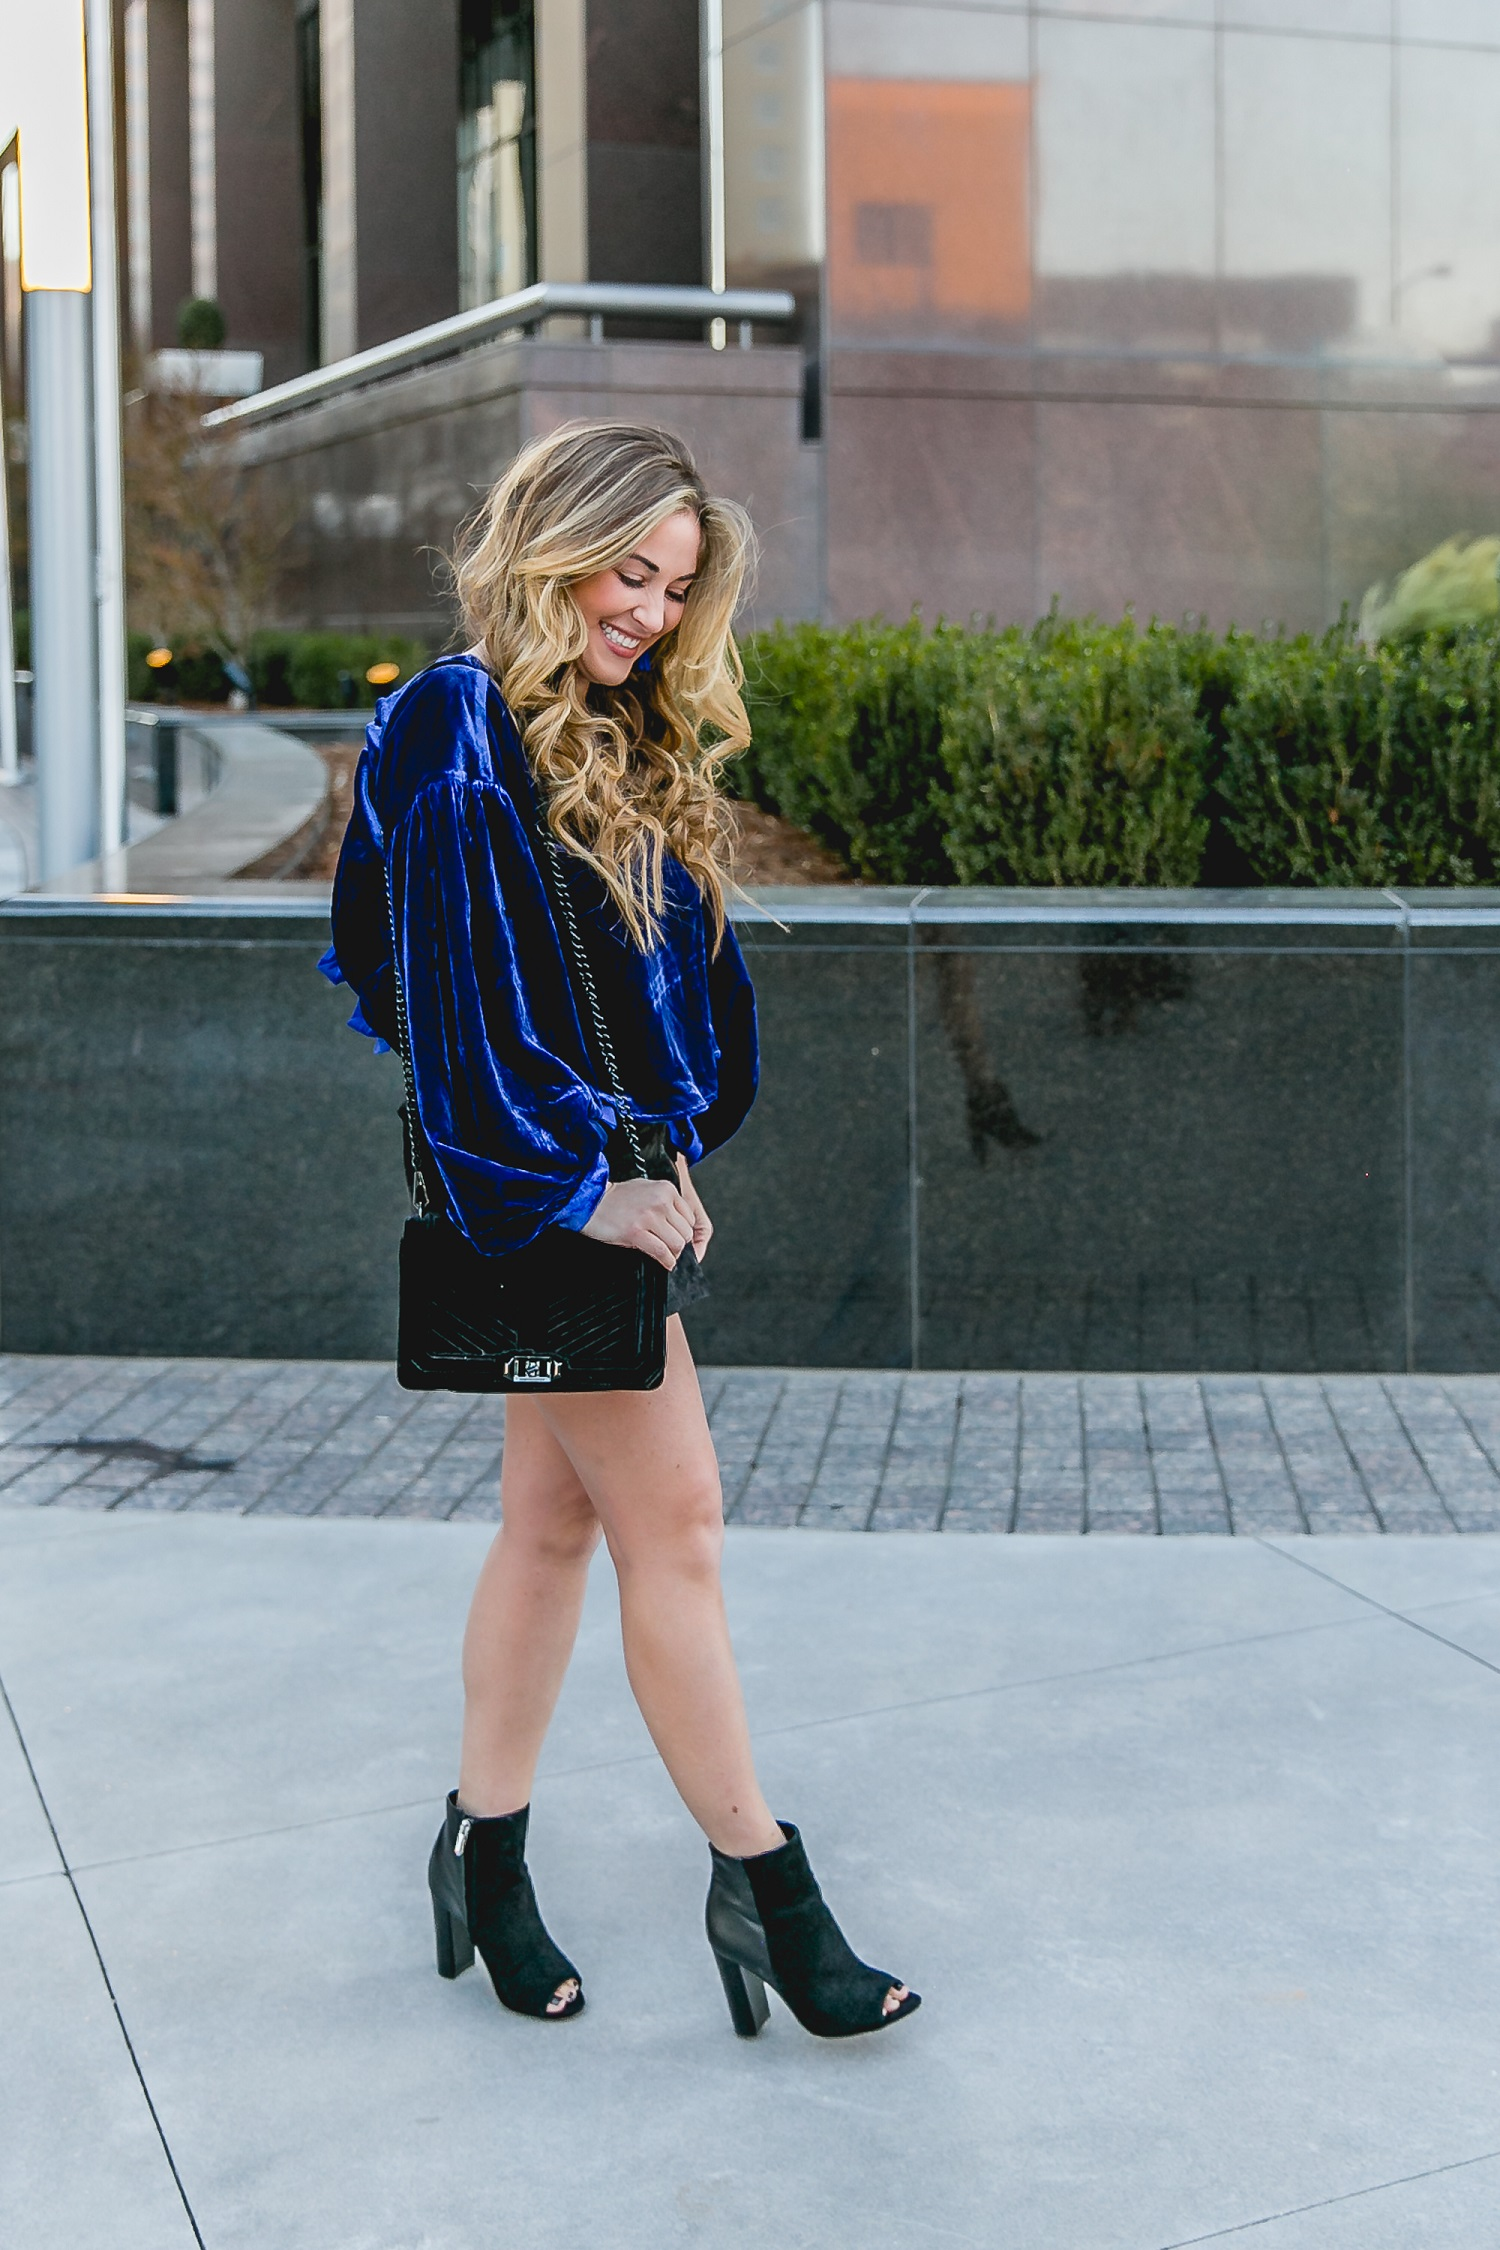 Winter Booties by popular East Memphis fashion blogger Walking in Memphis in High Heels